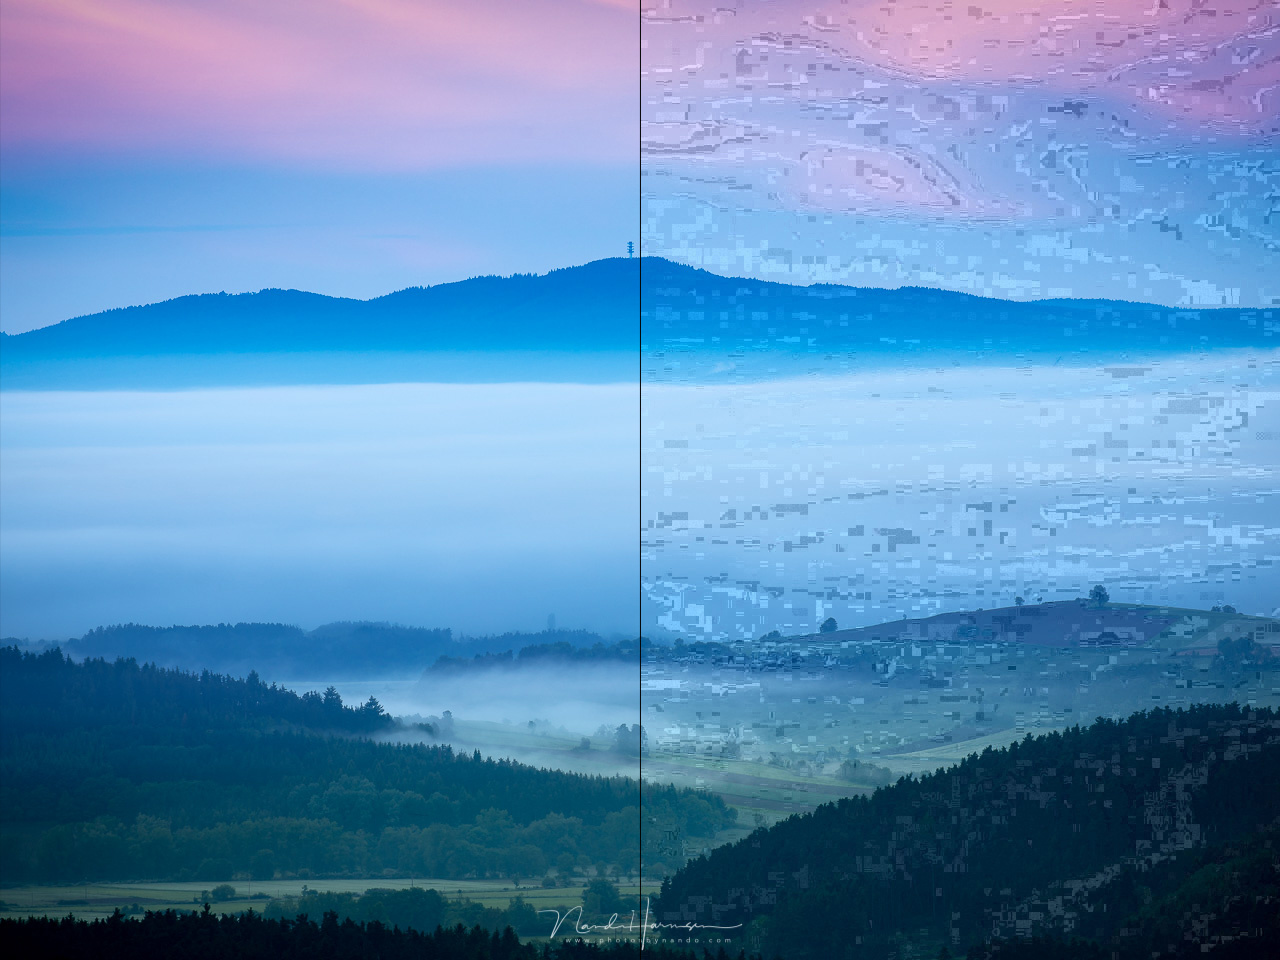 This is the difference between the original JPEG from the raw file, and the file that has been saved for ninety nine times. It doesn't matter if you perform any post-processing or not, the result will be the same. Unless you post-processing will degrade t